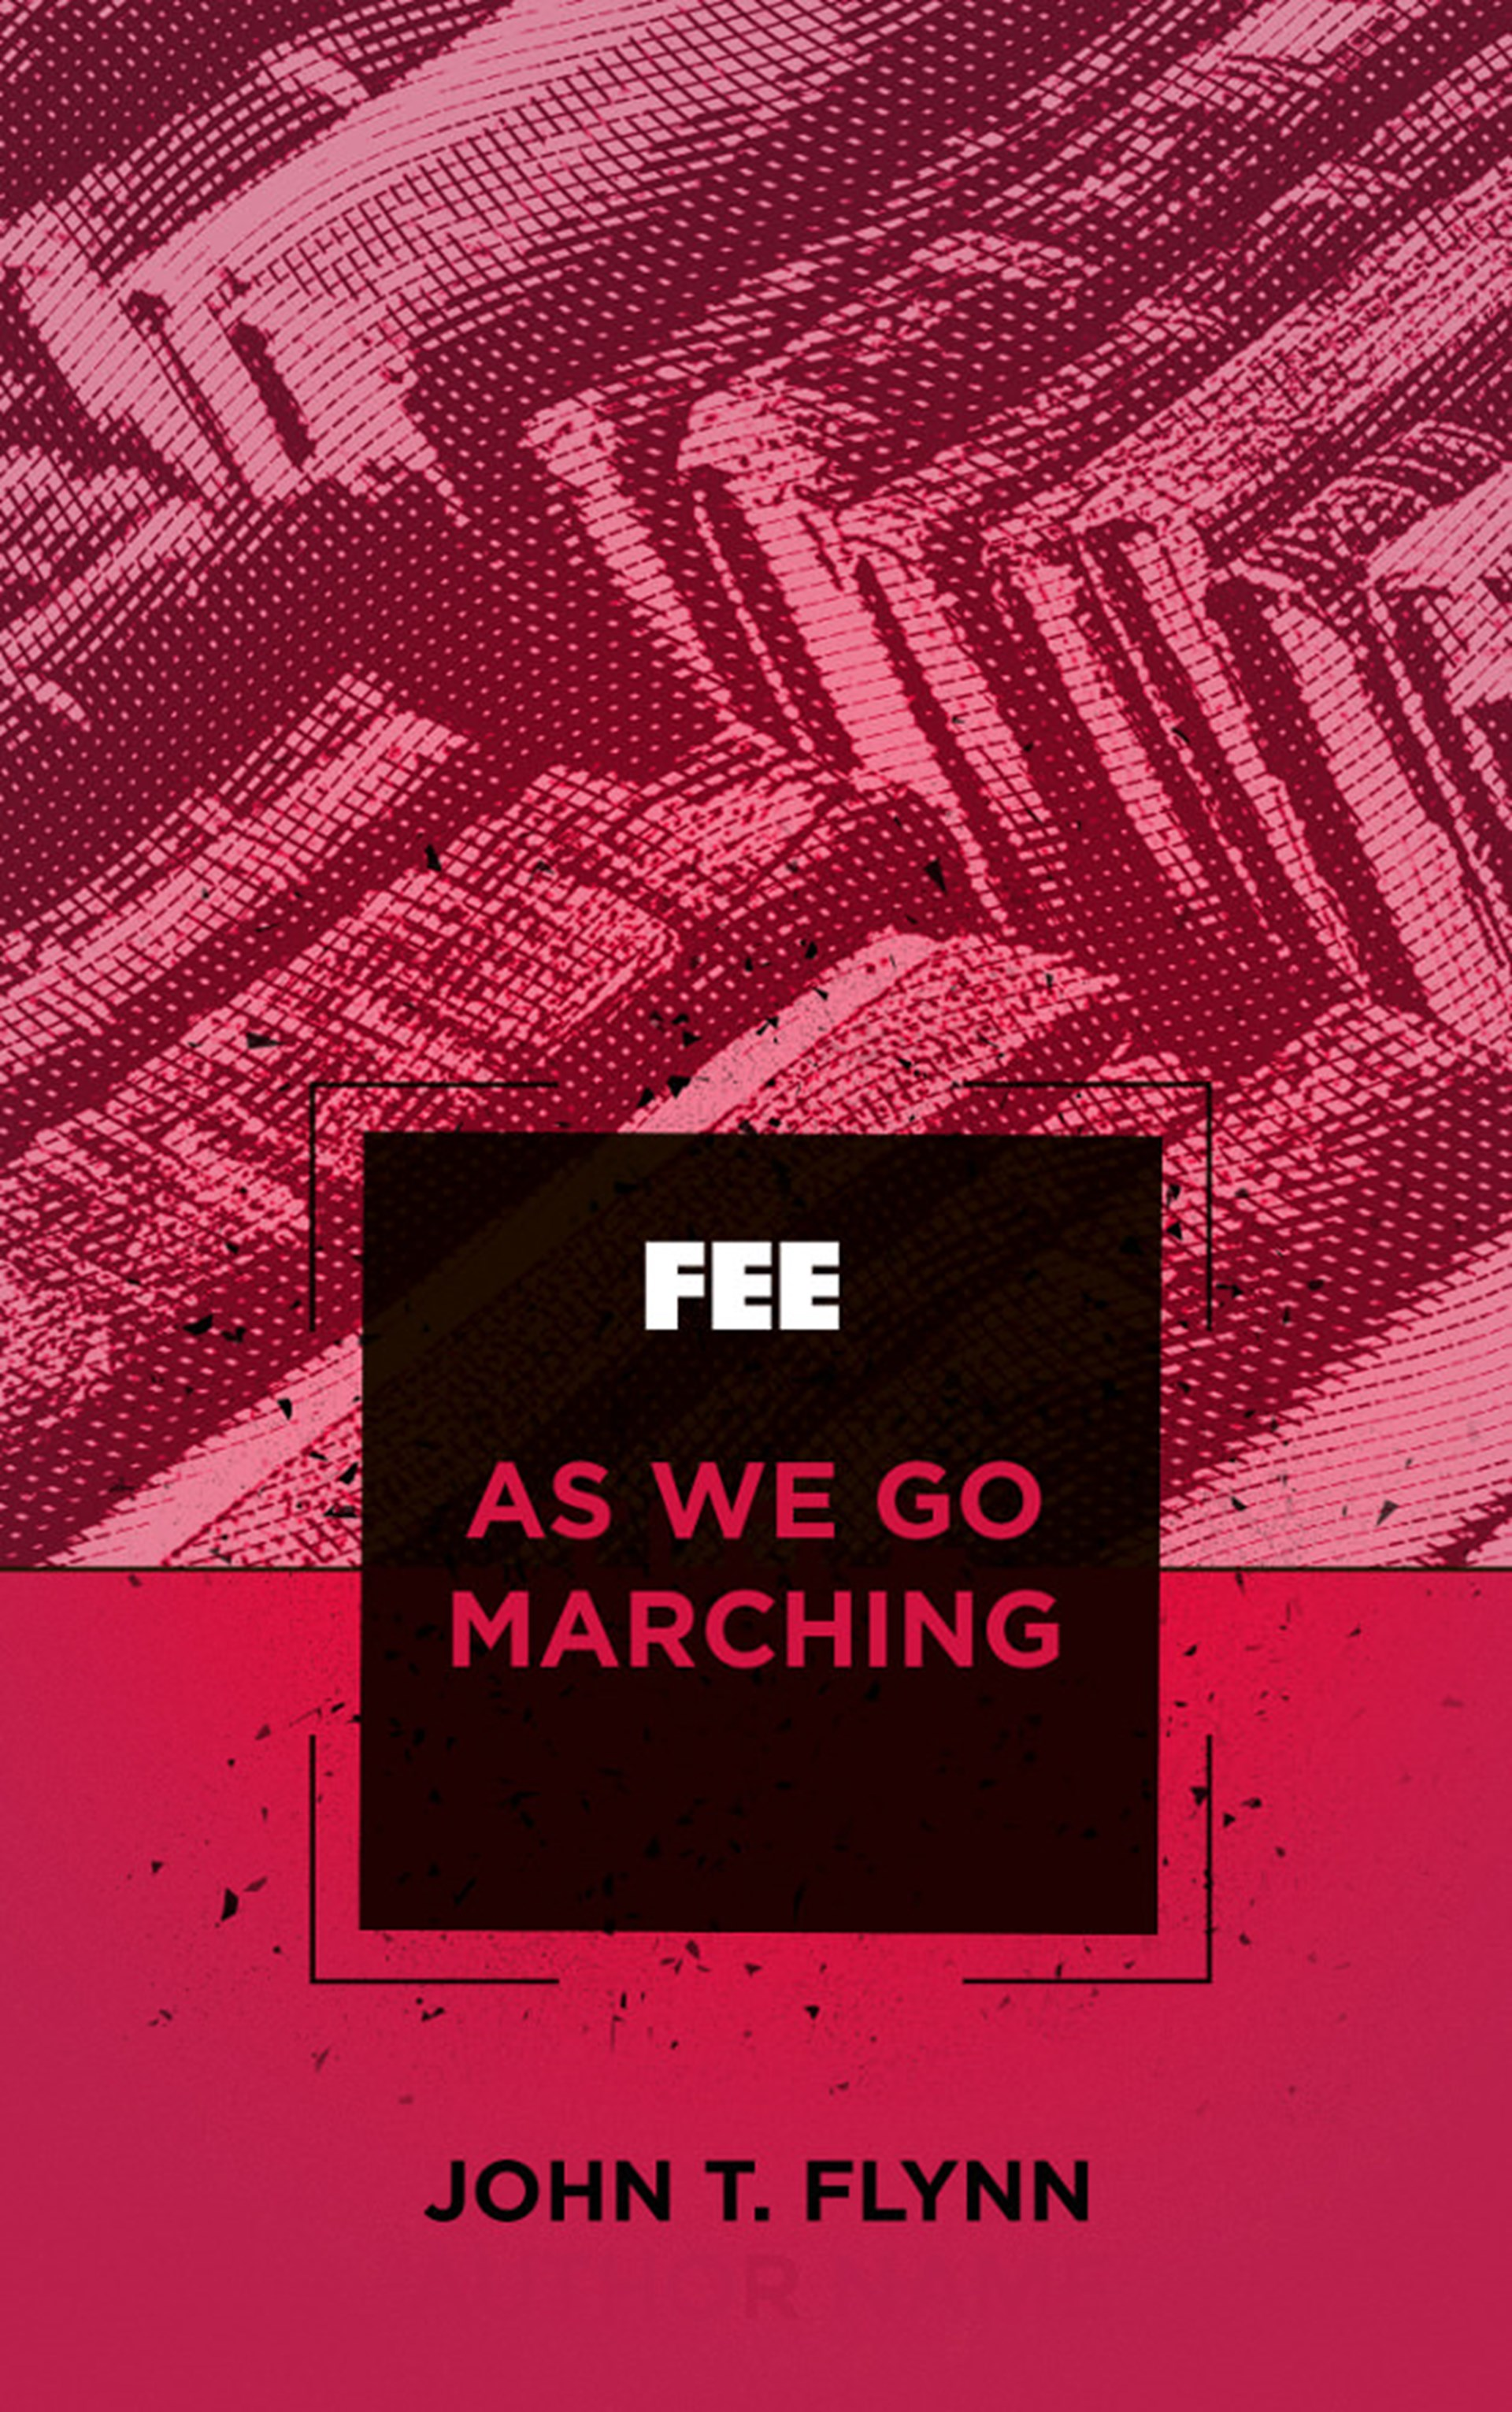 As We Go Marching - Foundation for Economic Education